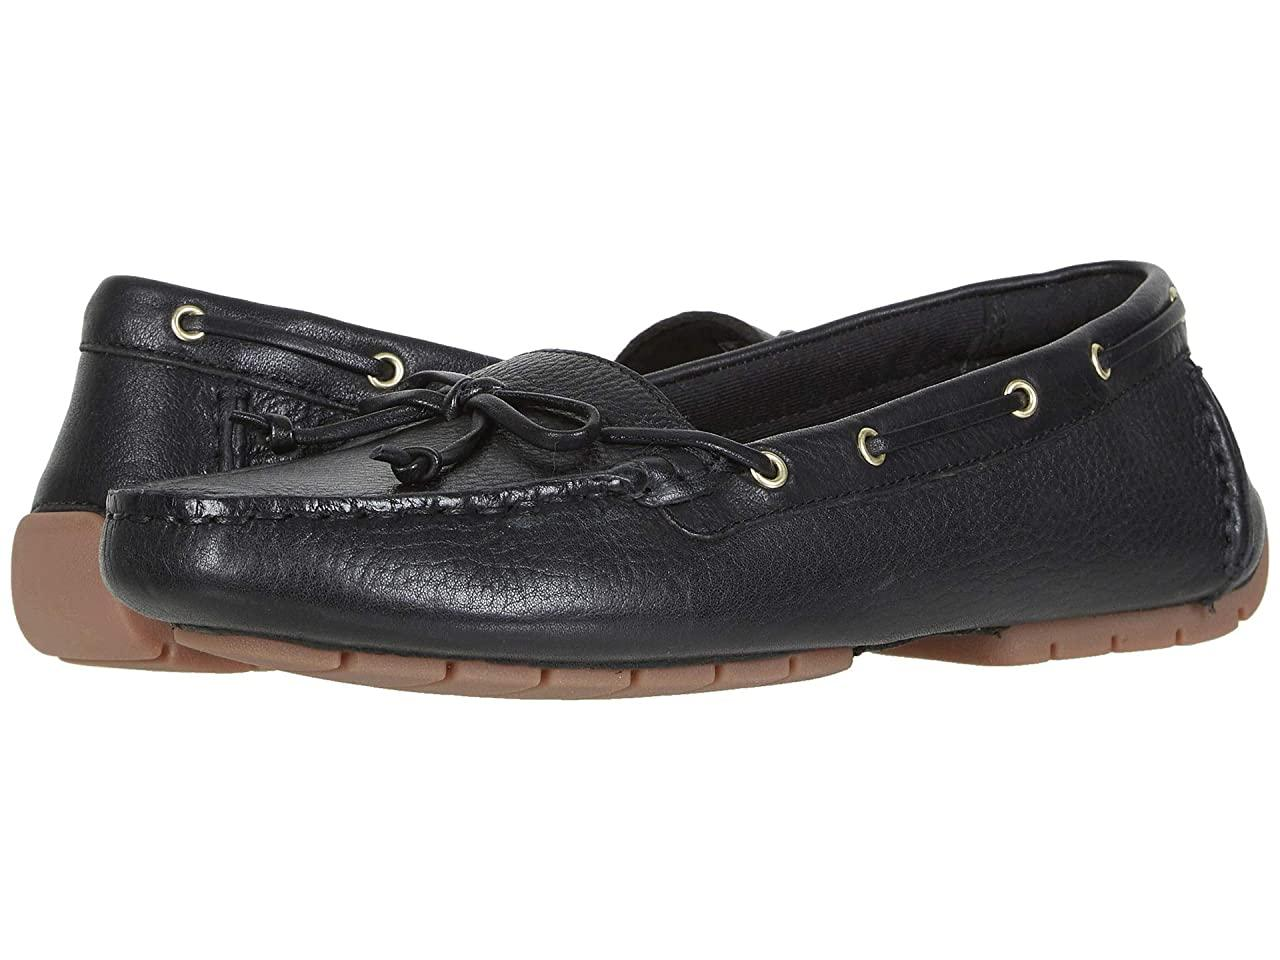 Топ-сайдеры (Оригинал) Clarks C Mocc Boat Black Leather